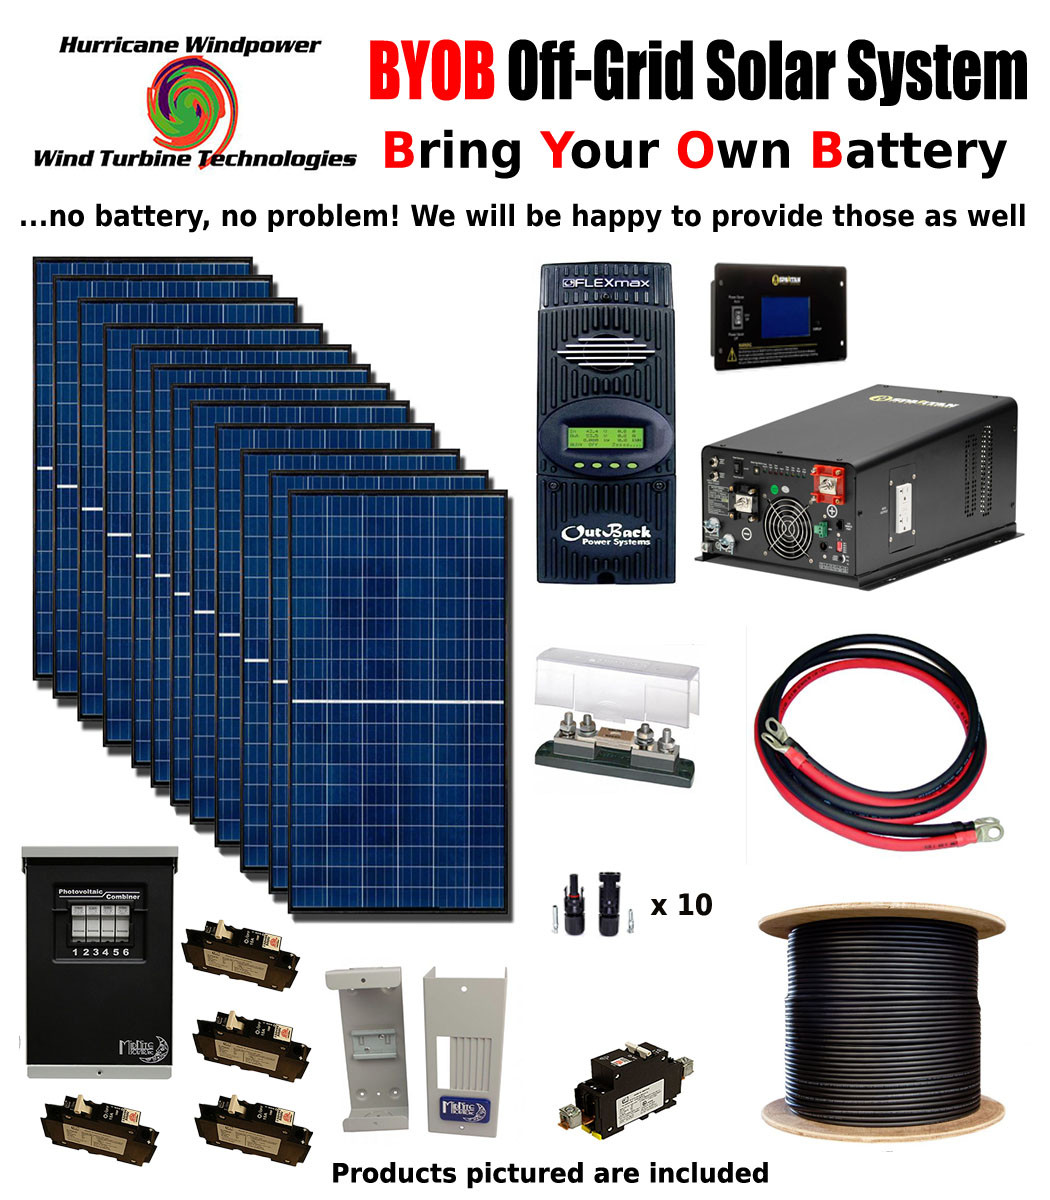 Byob Off Grid 34kw 48v Solar Panel Kit Tiny House Cabin Pv System Electrical Wiring Outback Fm80